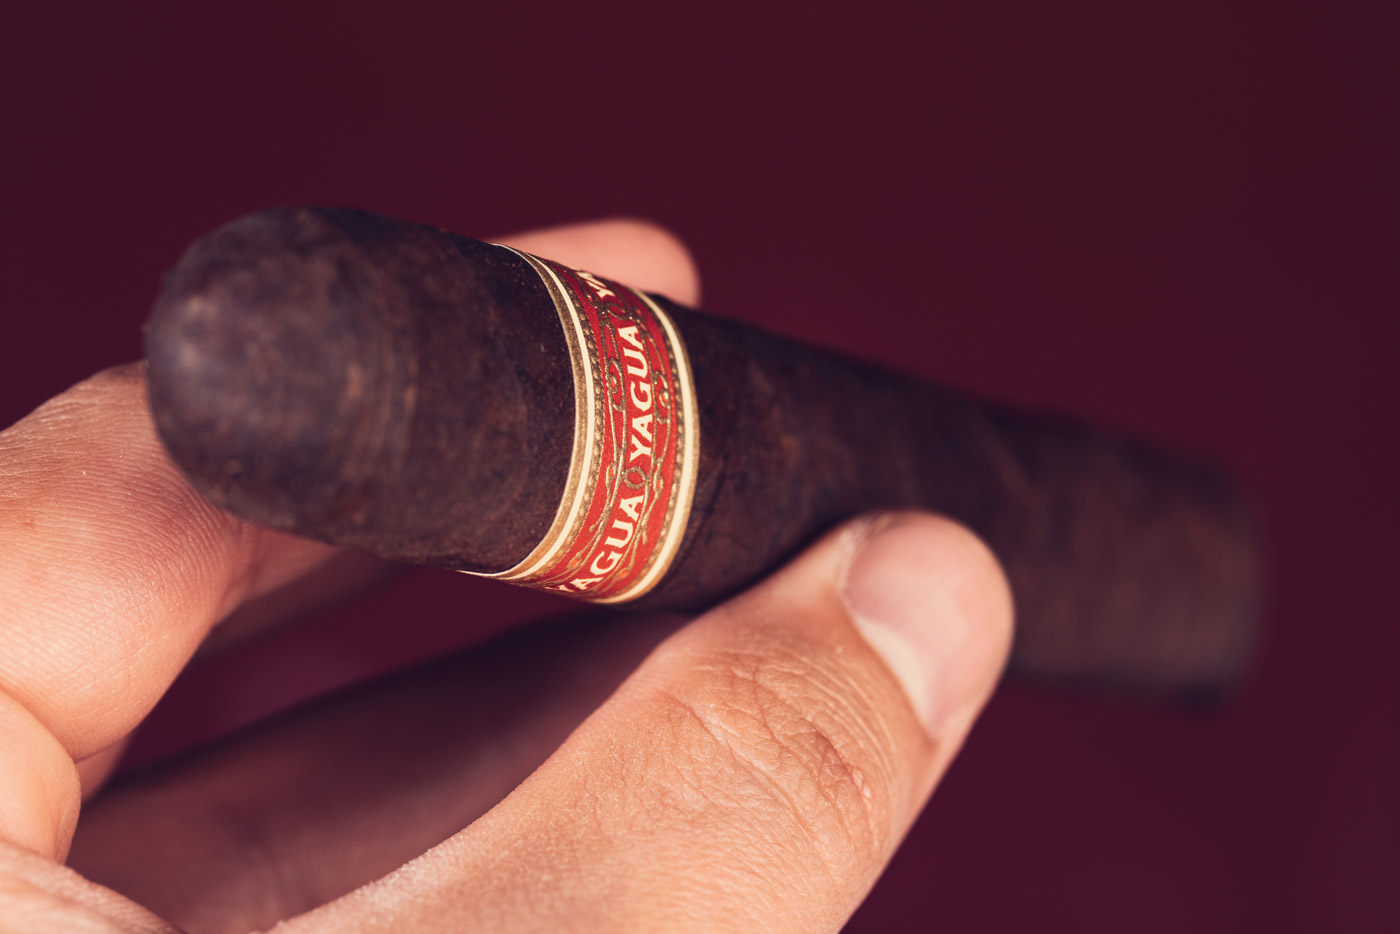 J.C. Newman Yagua cigar review